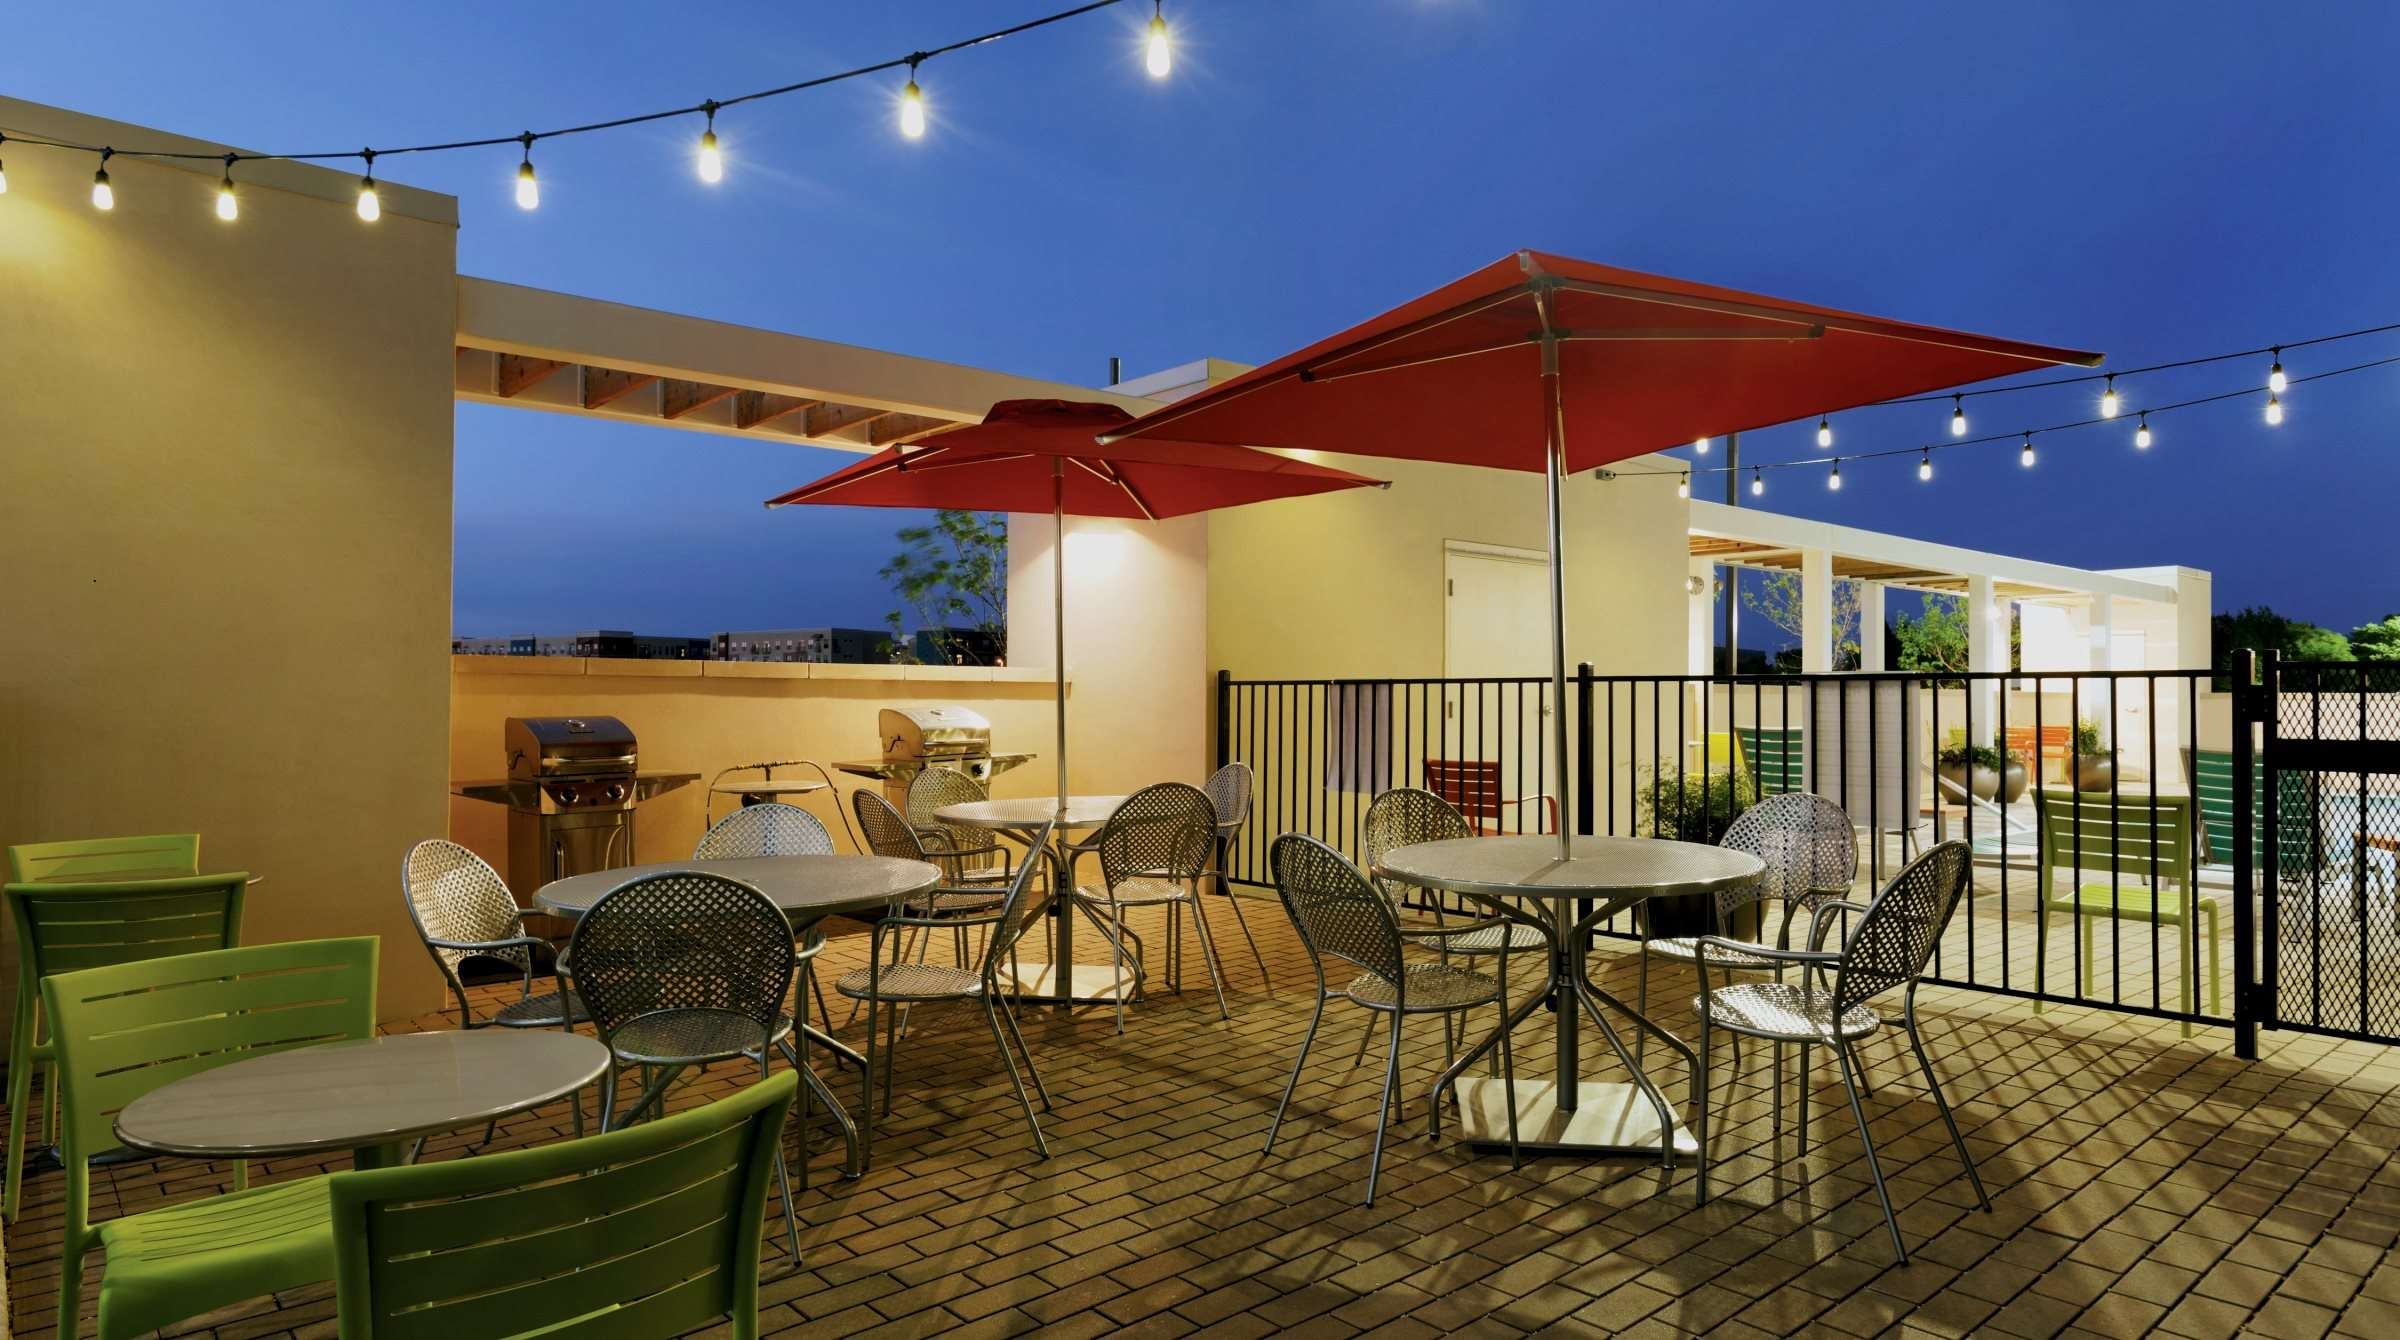 Home2 Suites by Hilton Austin Round Rock – Patio with BBQ Gril 60